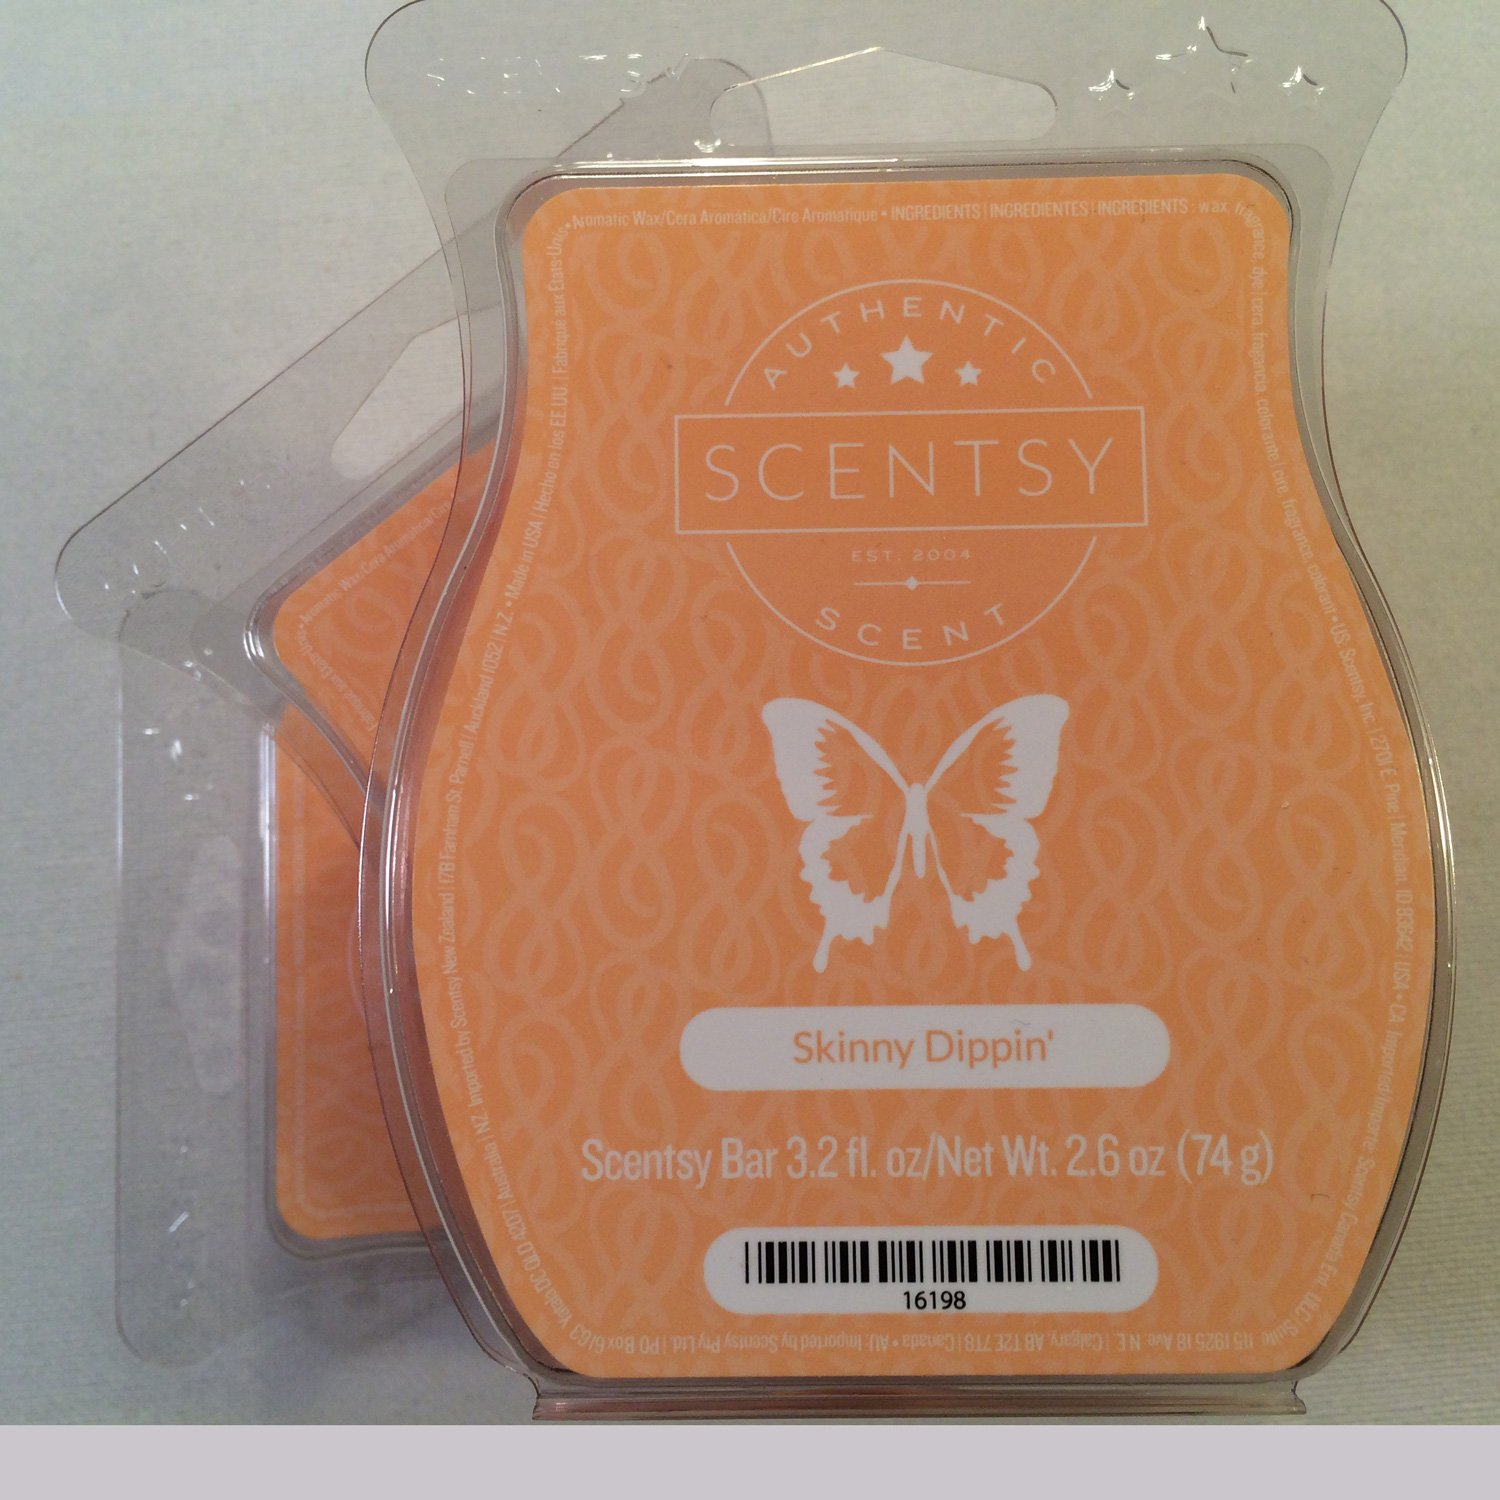 Scentsy, Skinny Dippin', Wickless Candle Tart Warmer Wax 3.2 Oz Bar, 3-pack (3)